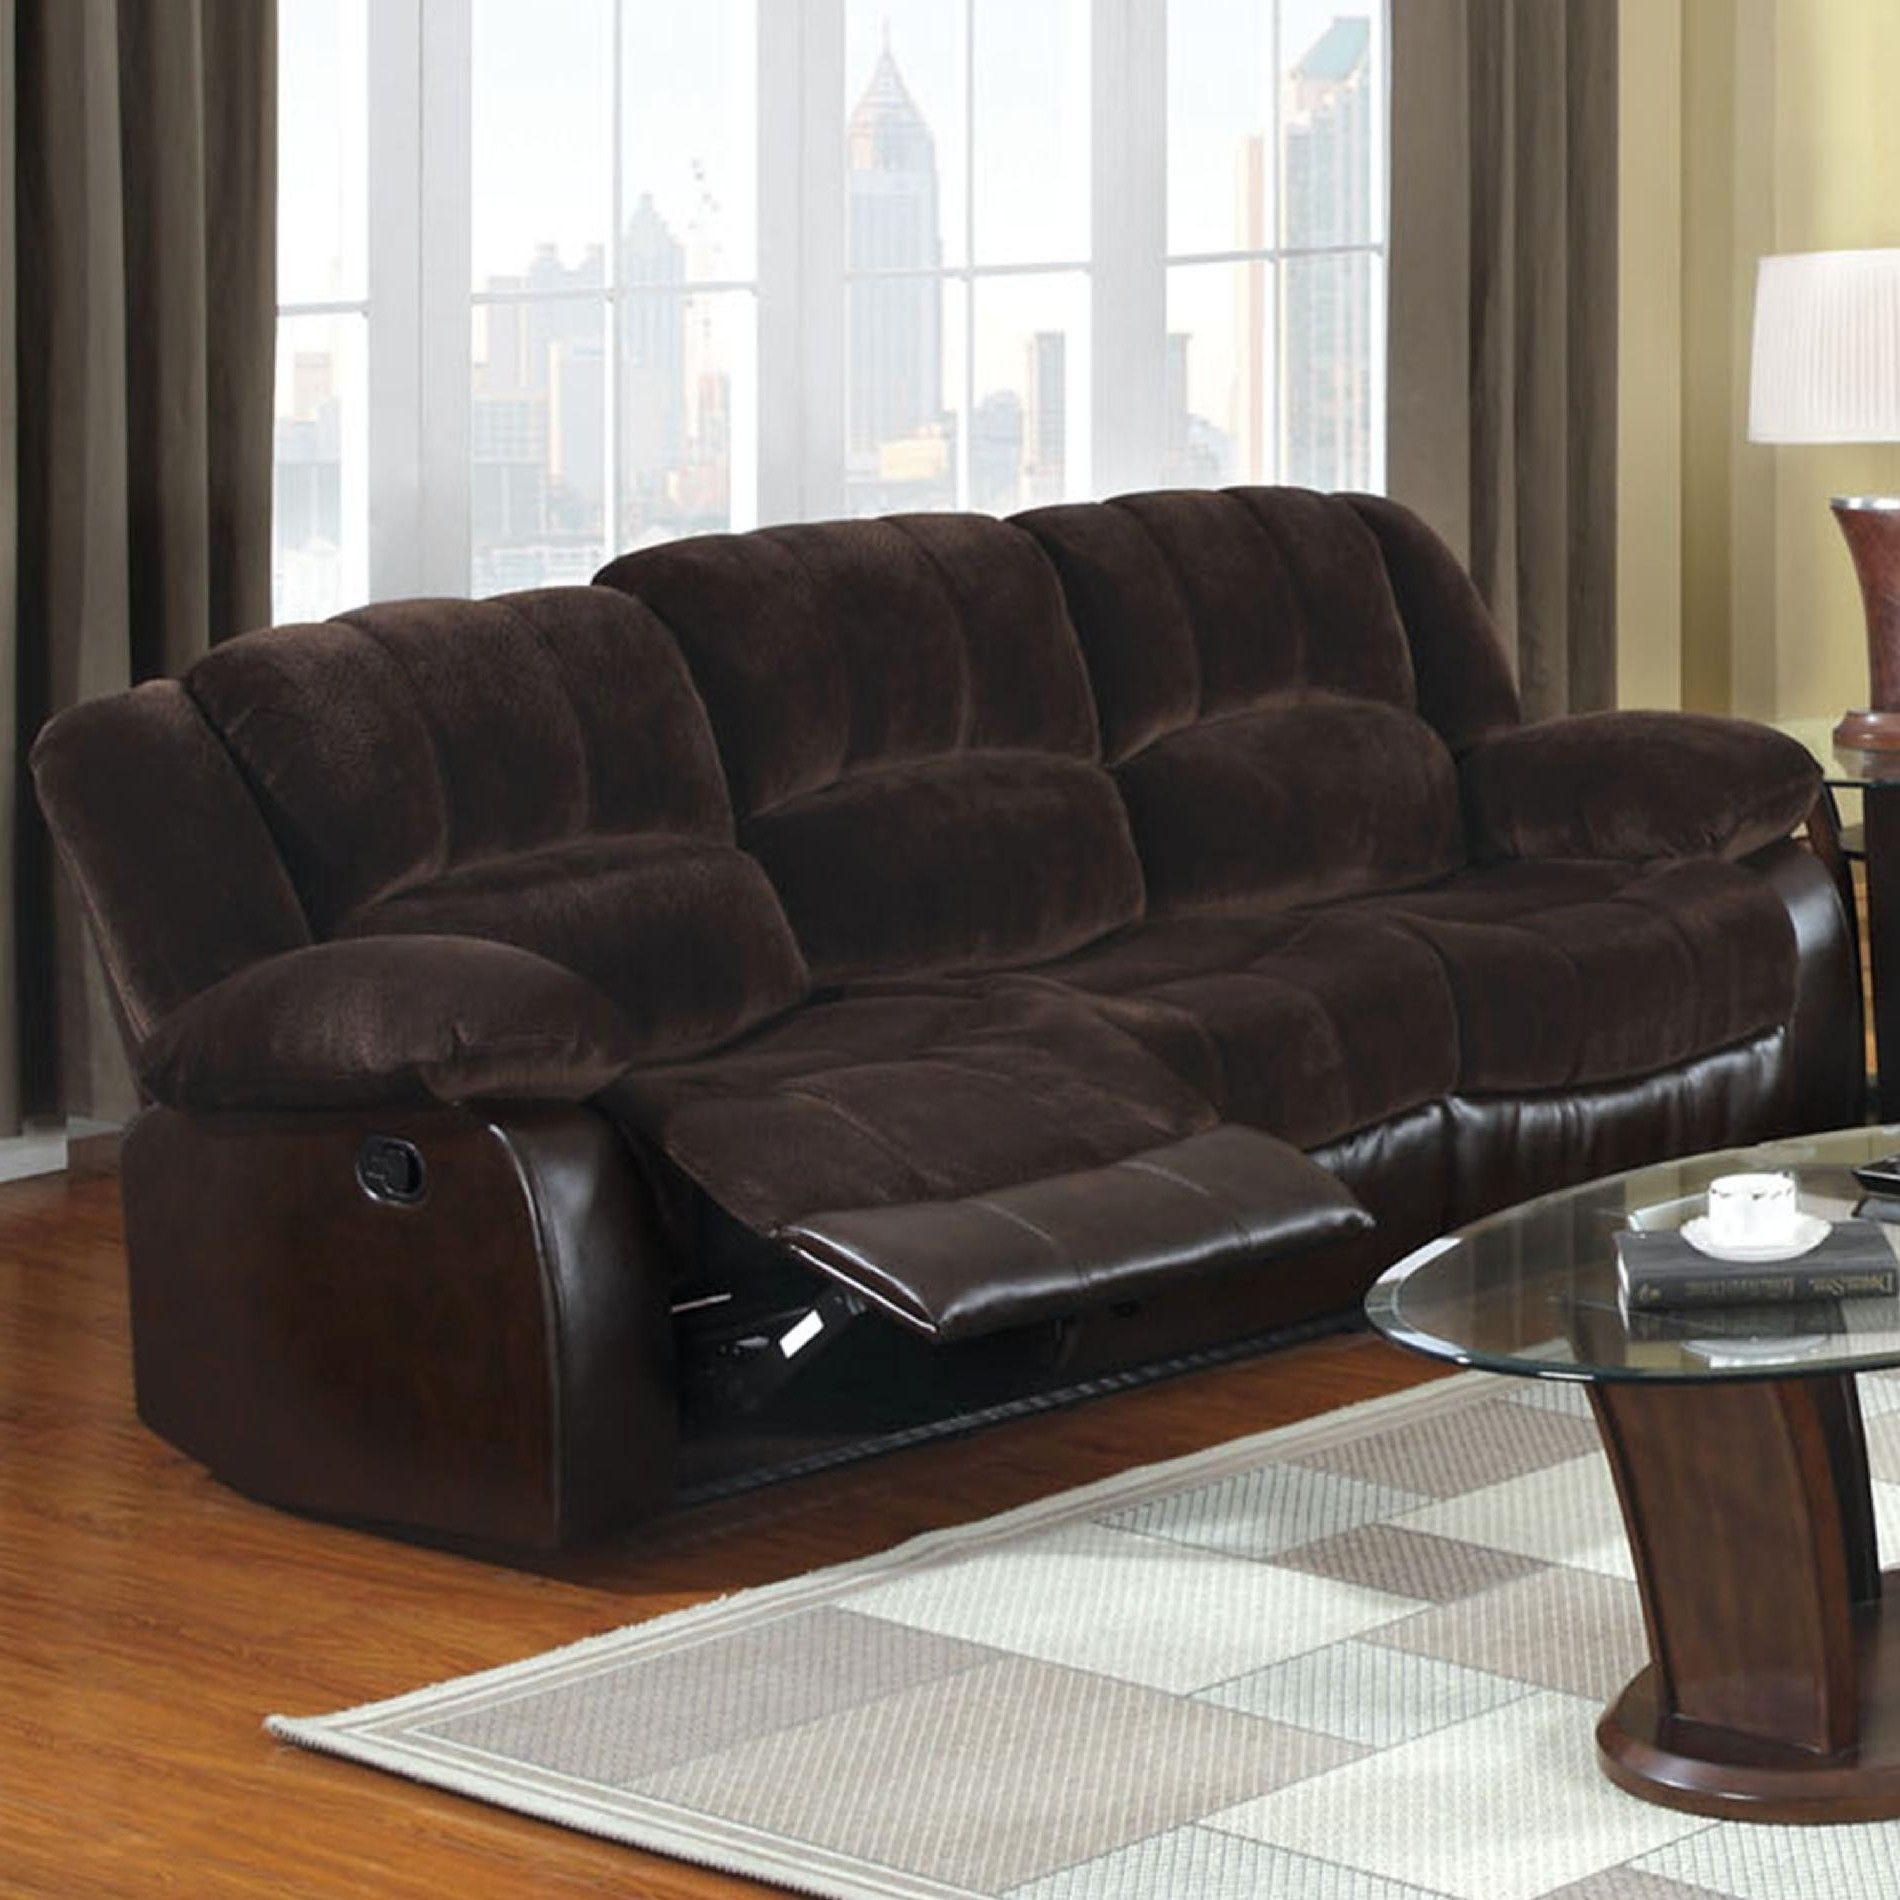 Awesome Sears Reclining Sofa , Inspirational Sears Reclining Sofa 88 For  Your Contemporary Sofa Inspiration With